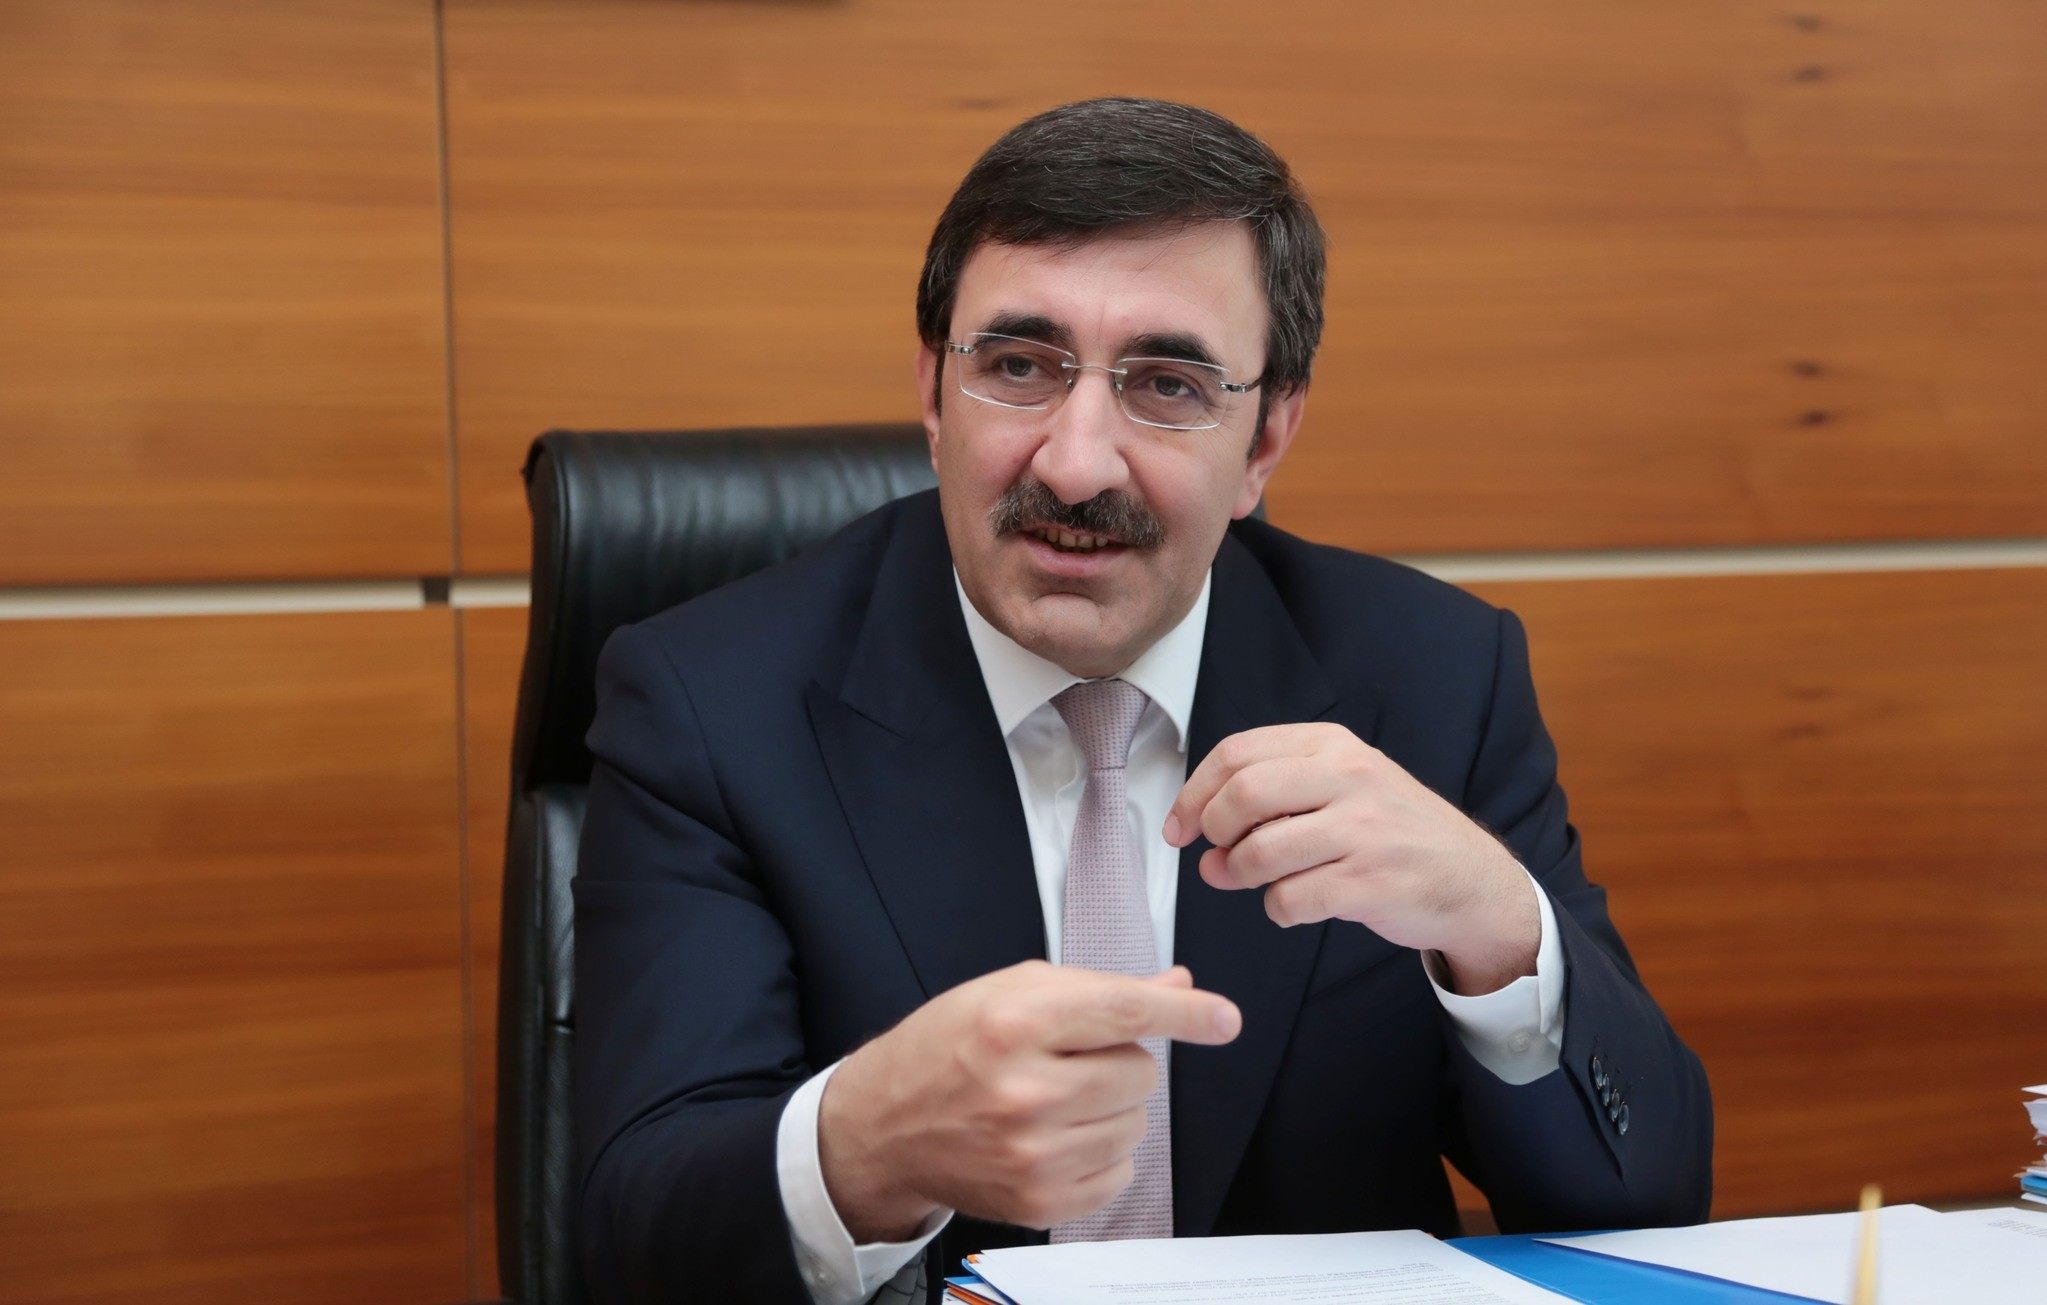 AK Party Deputy Chairman Yu0131lmaz said the economic growth expectation for Turkey in 2018 is around 5.5 percent.